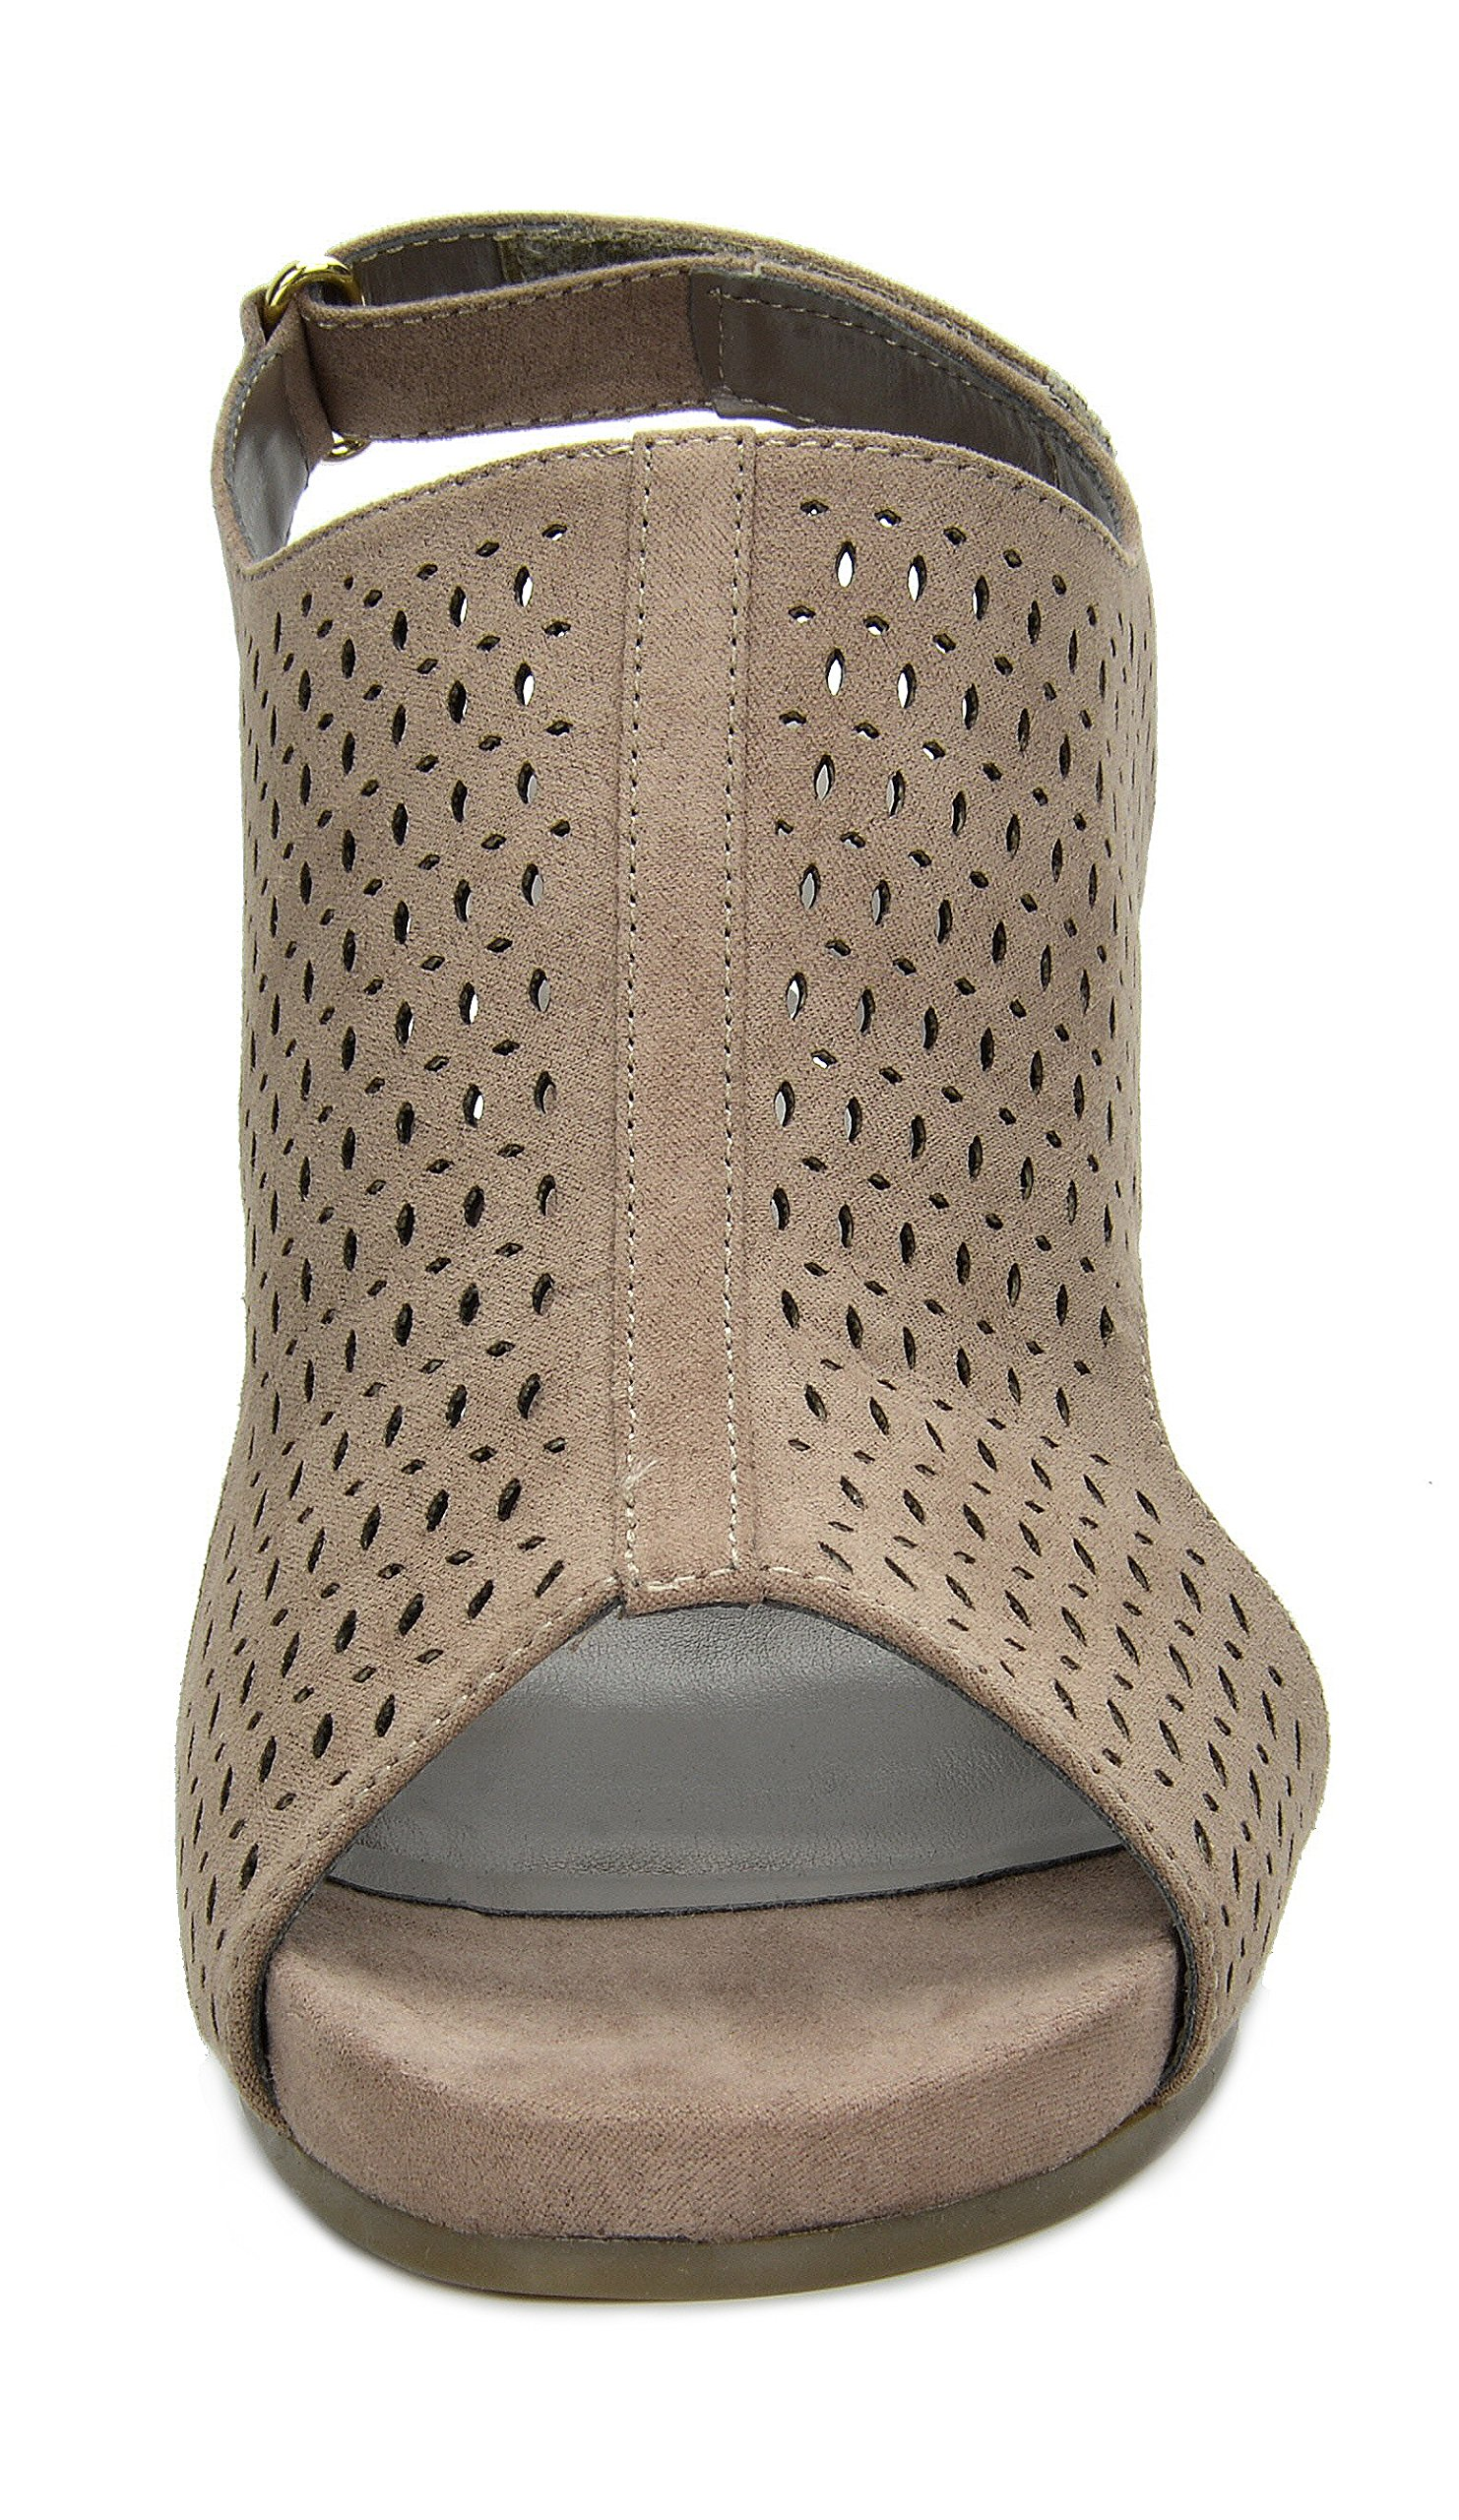 TOETOS Women's Solsoft-6 Taupe Mid Heel Platform Wedges Sandals - 9.5 M US by TOETOS (Image #5)